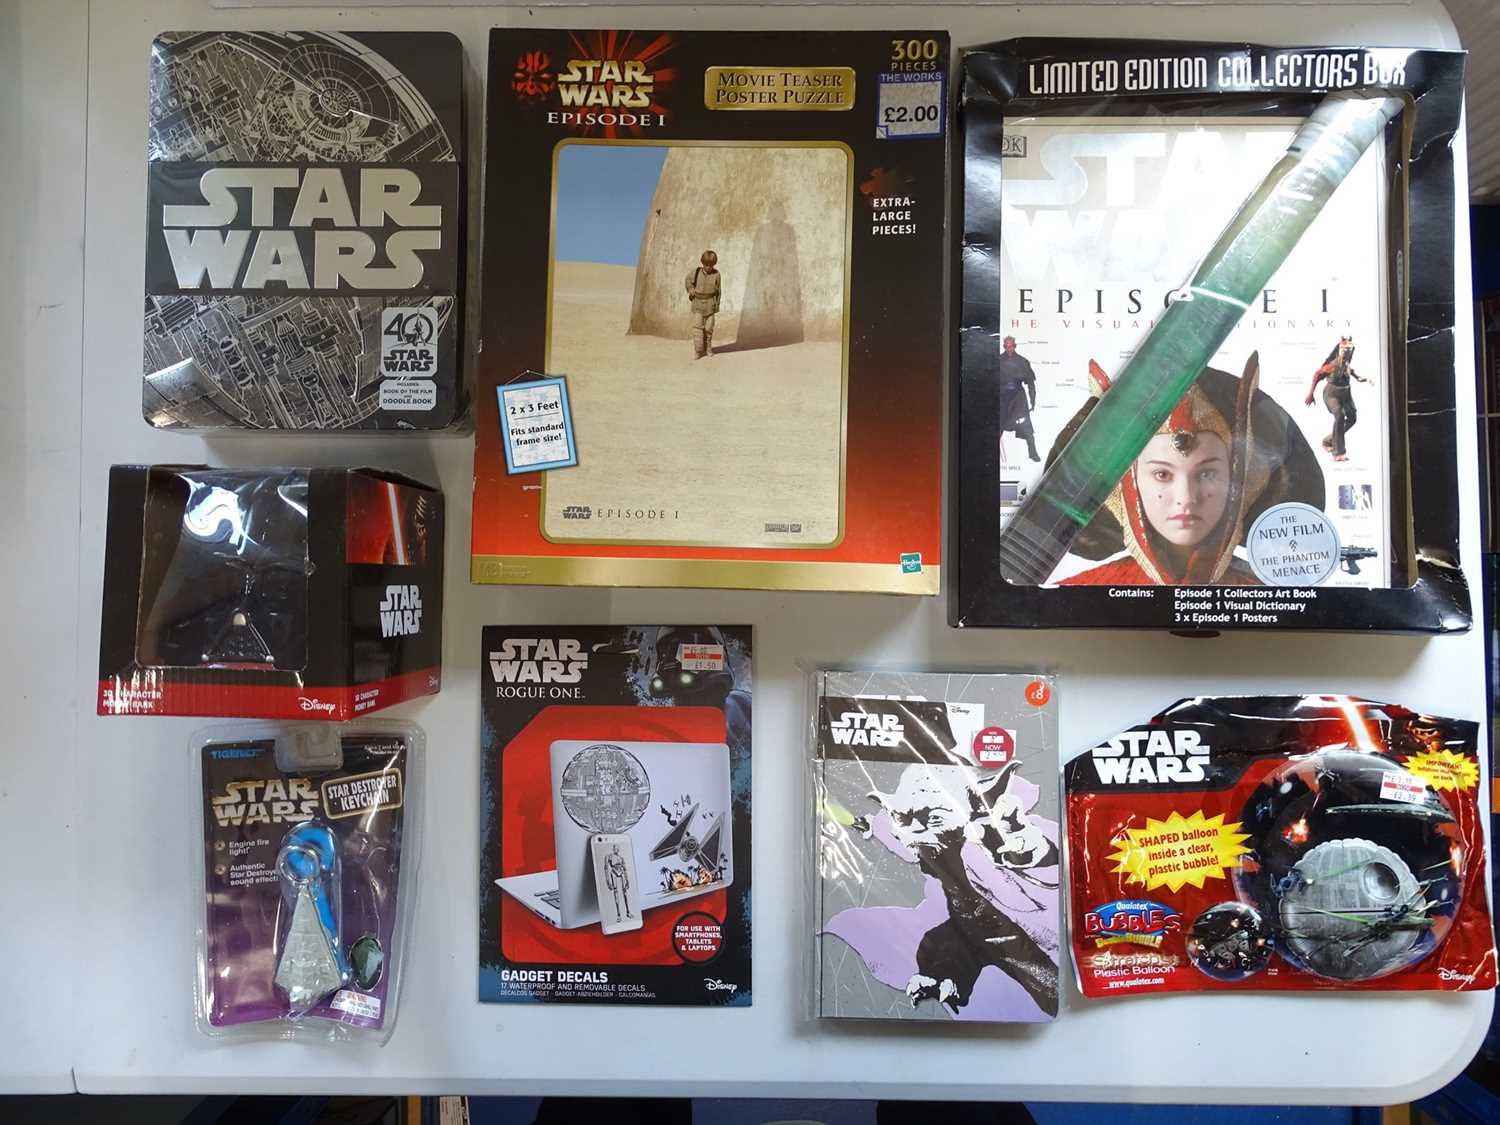 A large group of STAR WARS collectable items including a Darth Vader money bank together with books, - Image 2 of 8